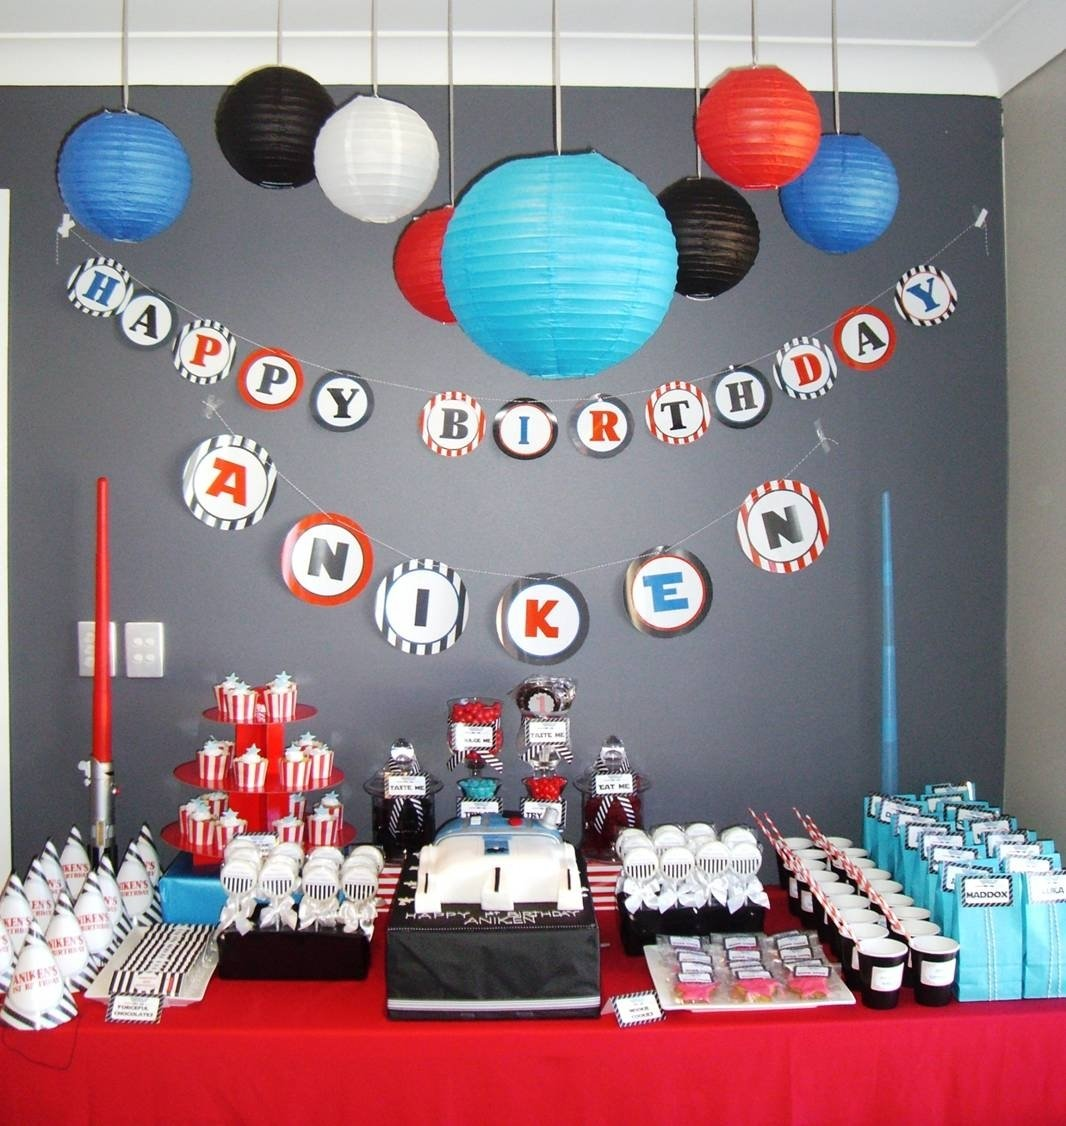 10 Most Recommended 5 Year Birthday Party Ideas creative birthday party ideas for boys 78 images about 5 year old 2020